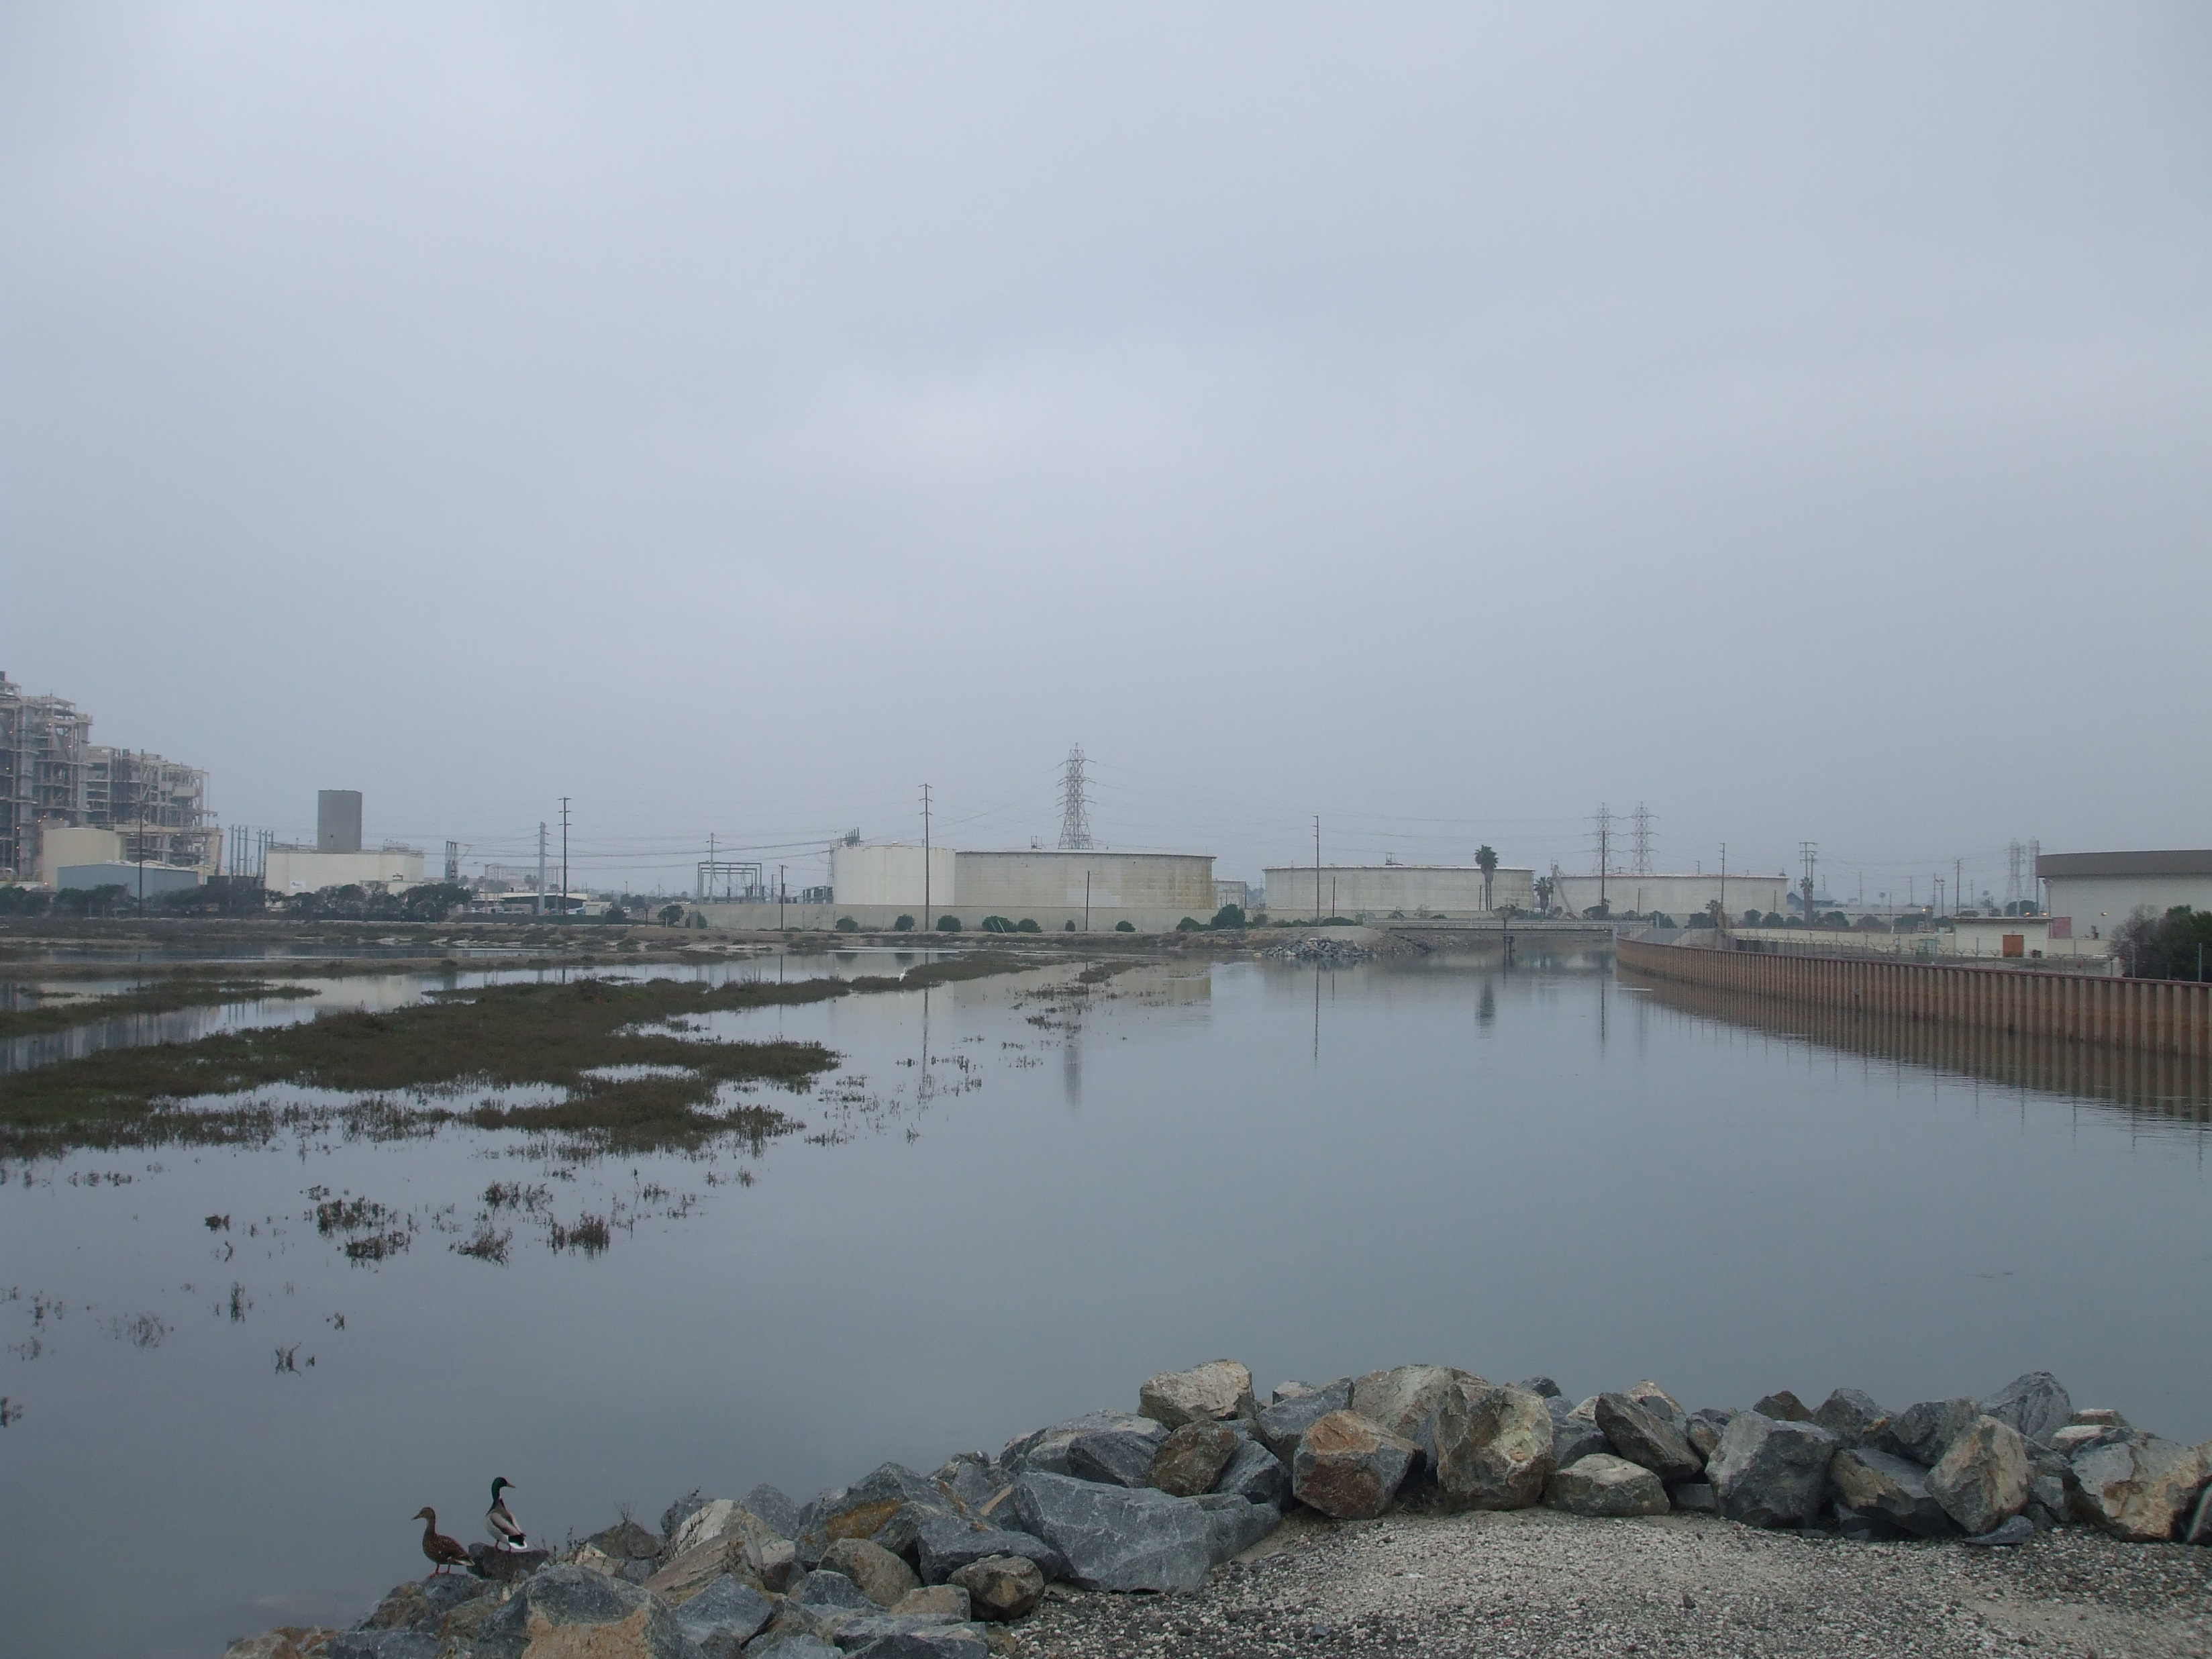 King_Tides_Poseidon_Desalination_Huntington_Beach2.JPG